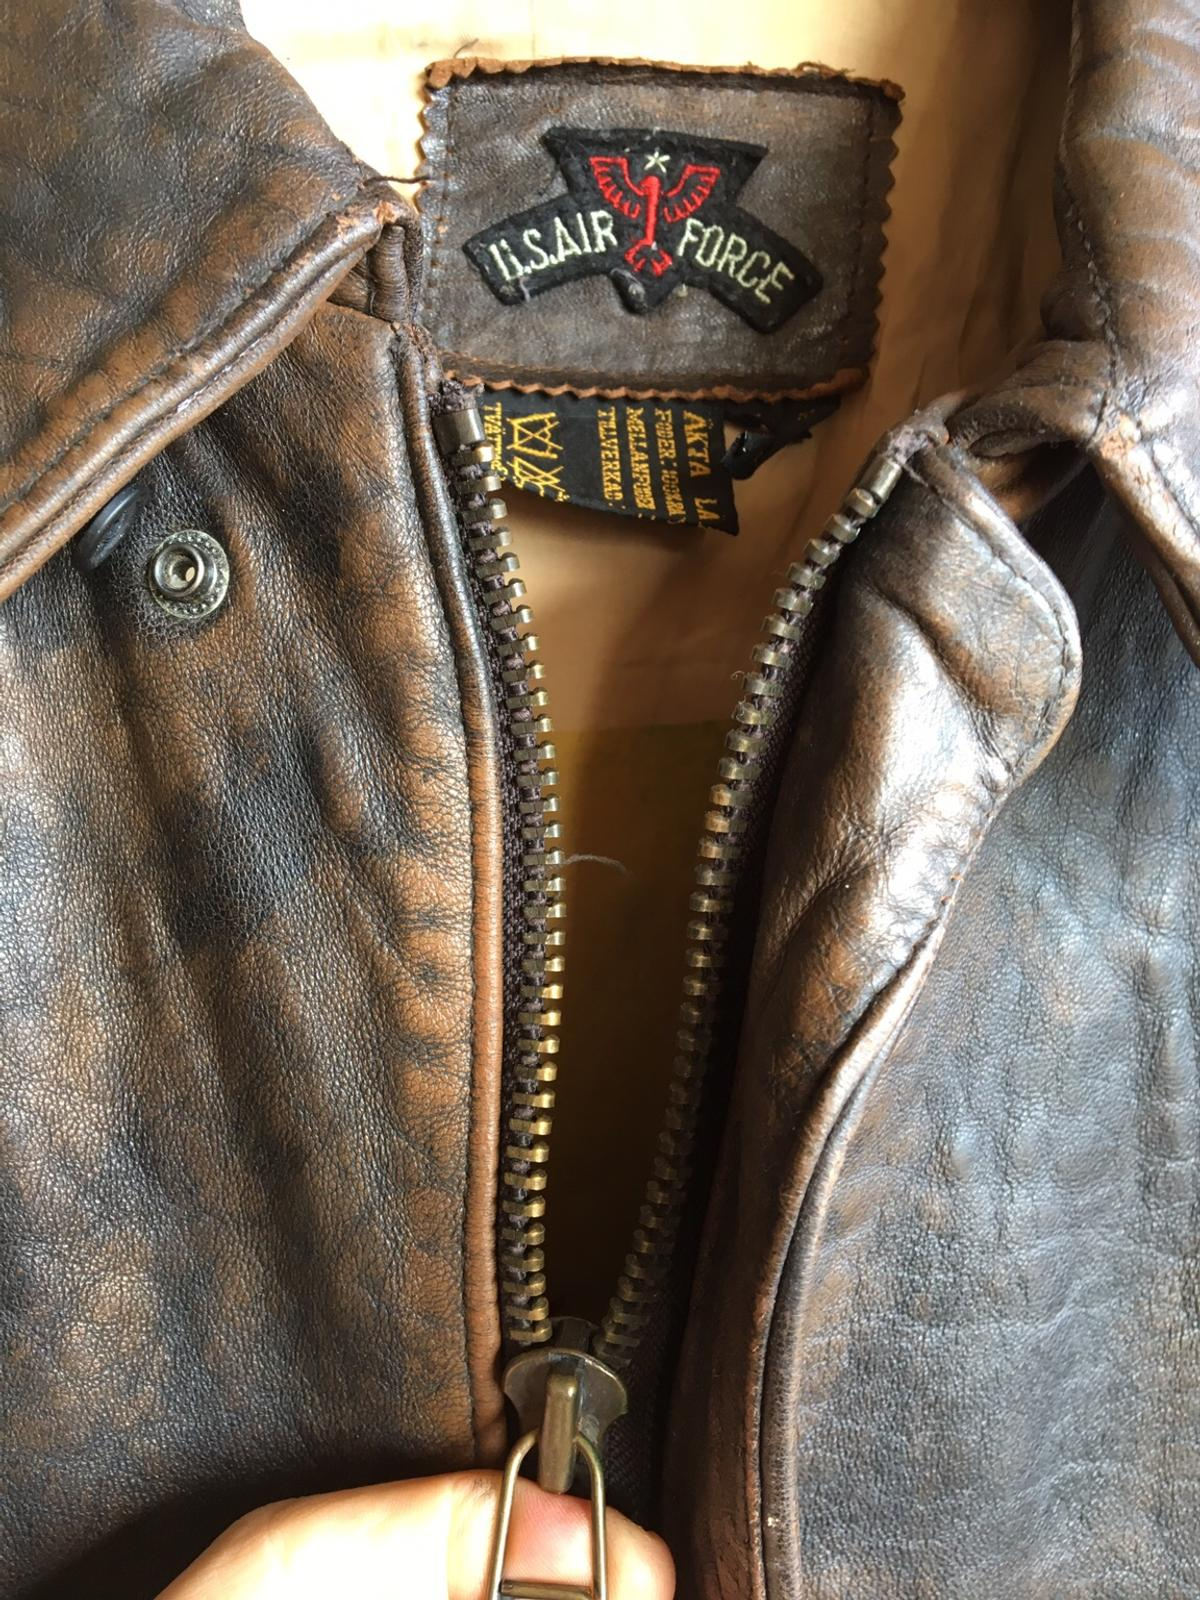 c35cdedc4 Giacca di pelle Flight Jacket A2 tipo Avirex in 20147 Milano for ...